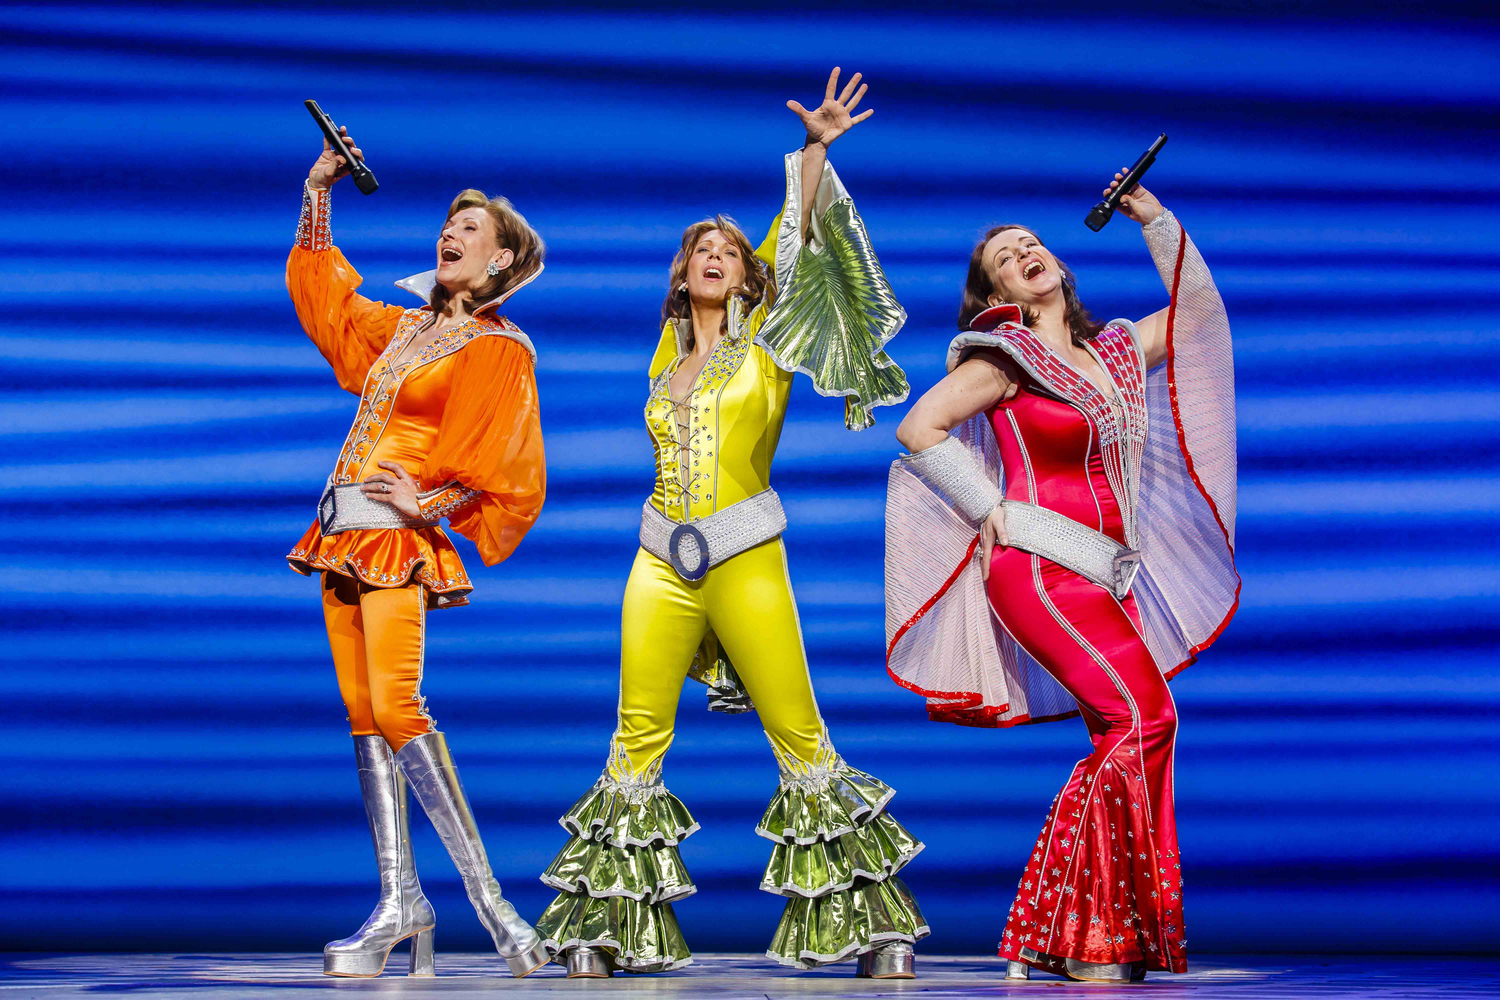 BWW Review: MAMMA MIA! Opens the Tour at the Landestheater Linz